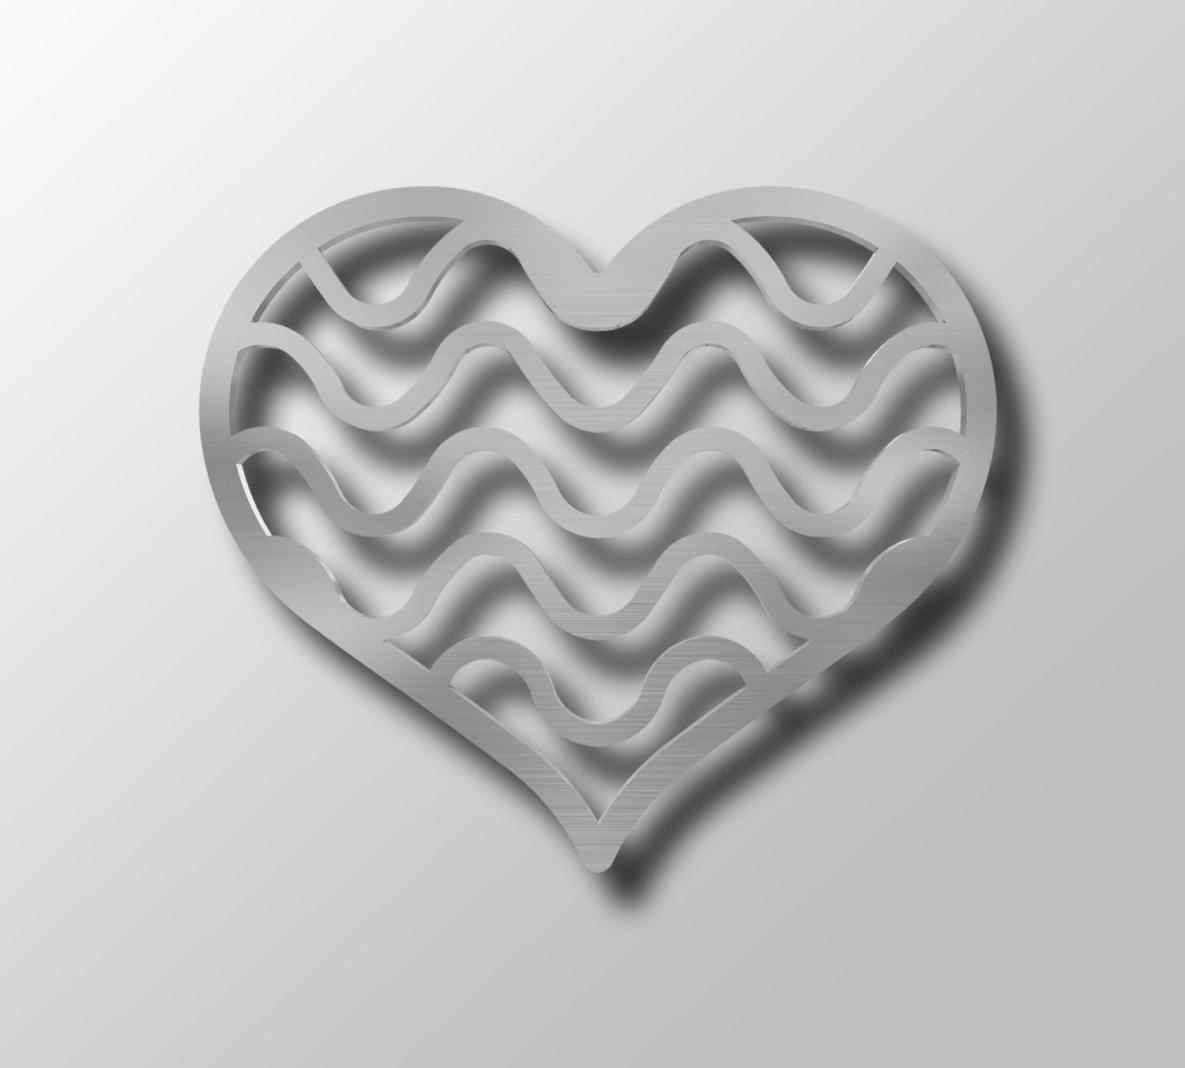 Of My Heart Shaped Metal Wall Art Sculpture Elegant In Ikea Canvas Intended For Most Popular Heart Shaped Metal Wall Art (Gallery 20 of 20)